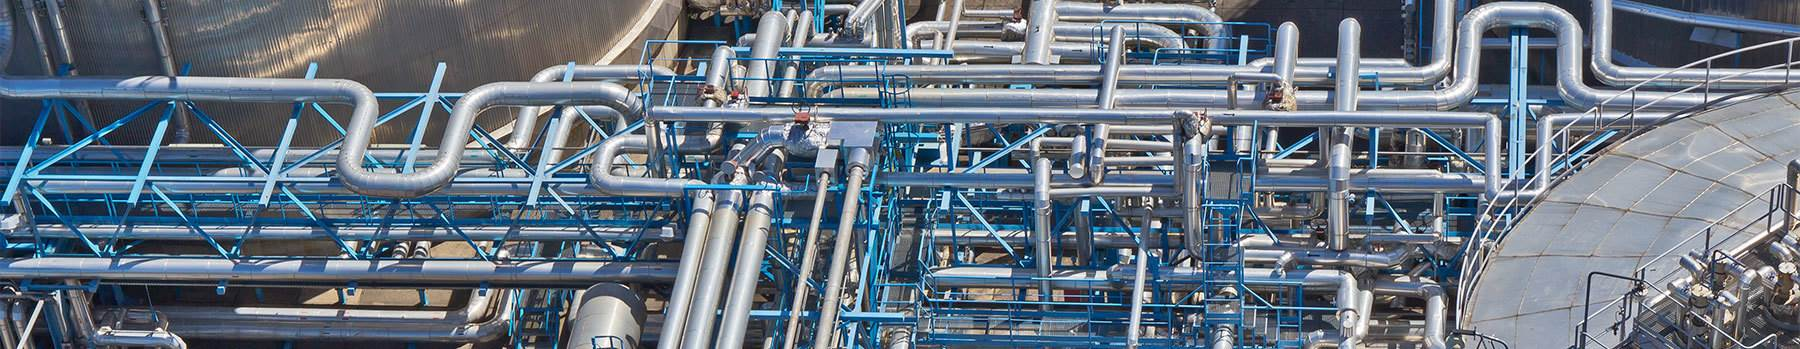 AutoPIPE -Piping and Vessel Design and Analysis Software